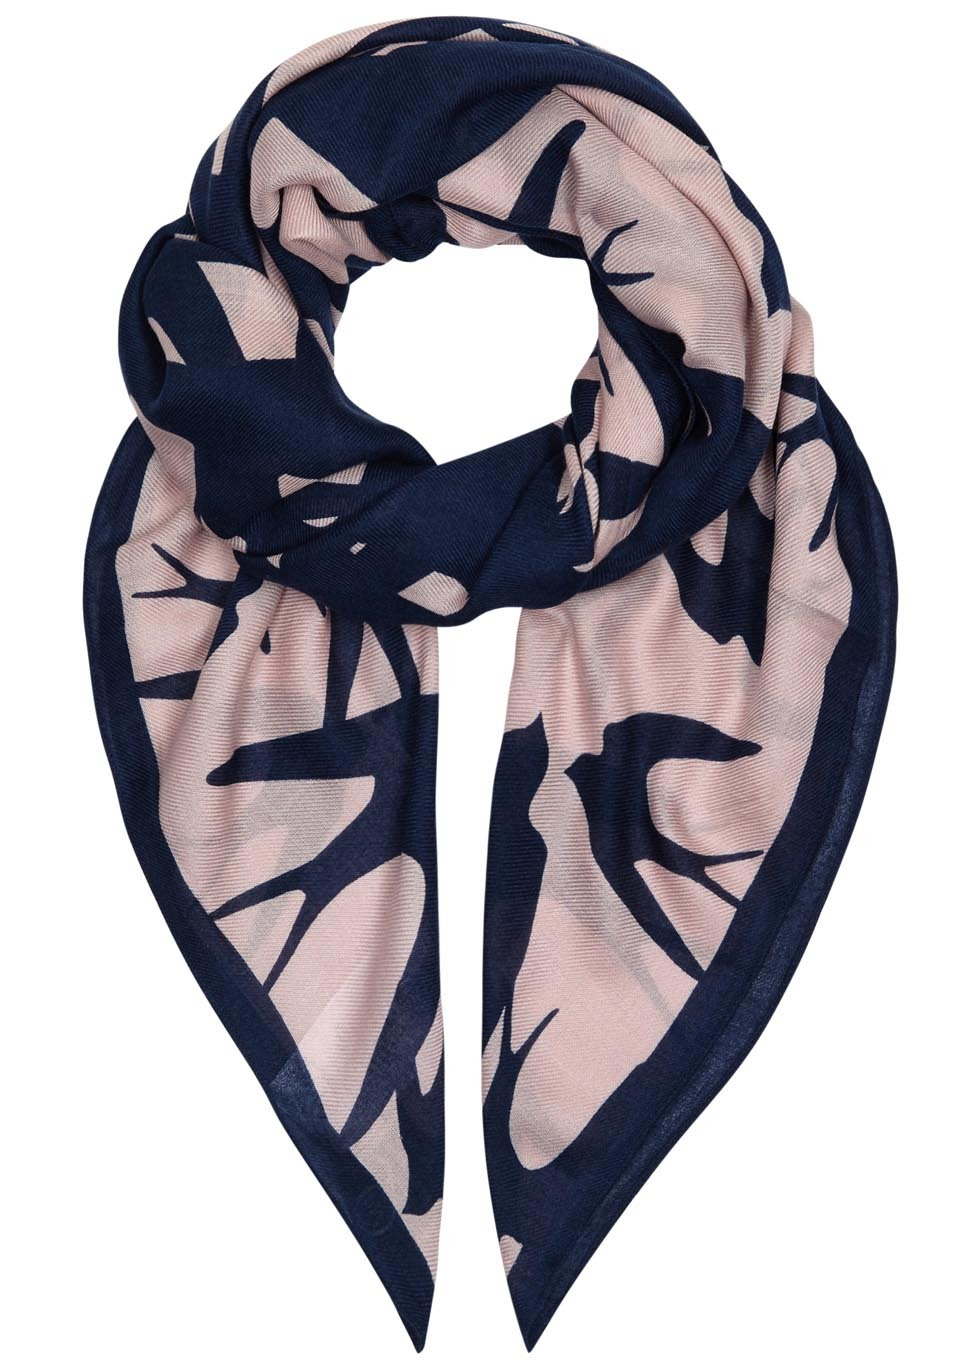 Swallow Swarm Printed Modal Blend Scarf - secondary colour: blush; predominant colour: navy; occasions: casual, evening, creative work; type of pattern: light; style: square; size: standard; material: fabric; pattern: patterned/print; season: a/w 2015